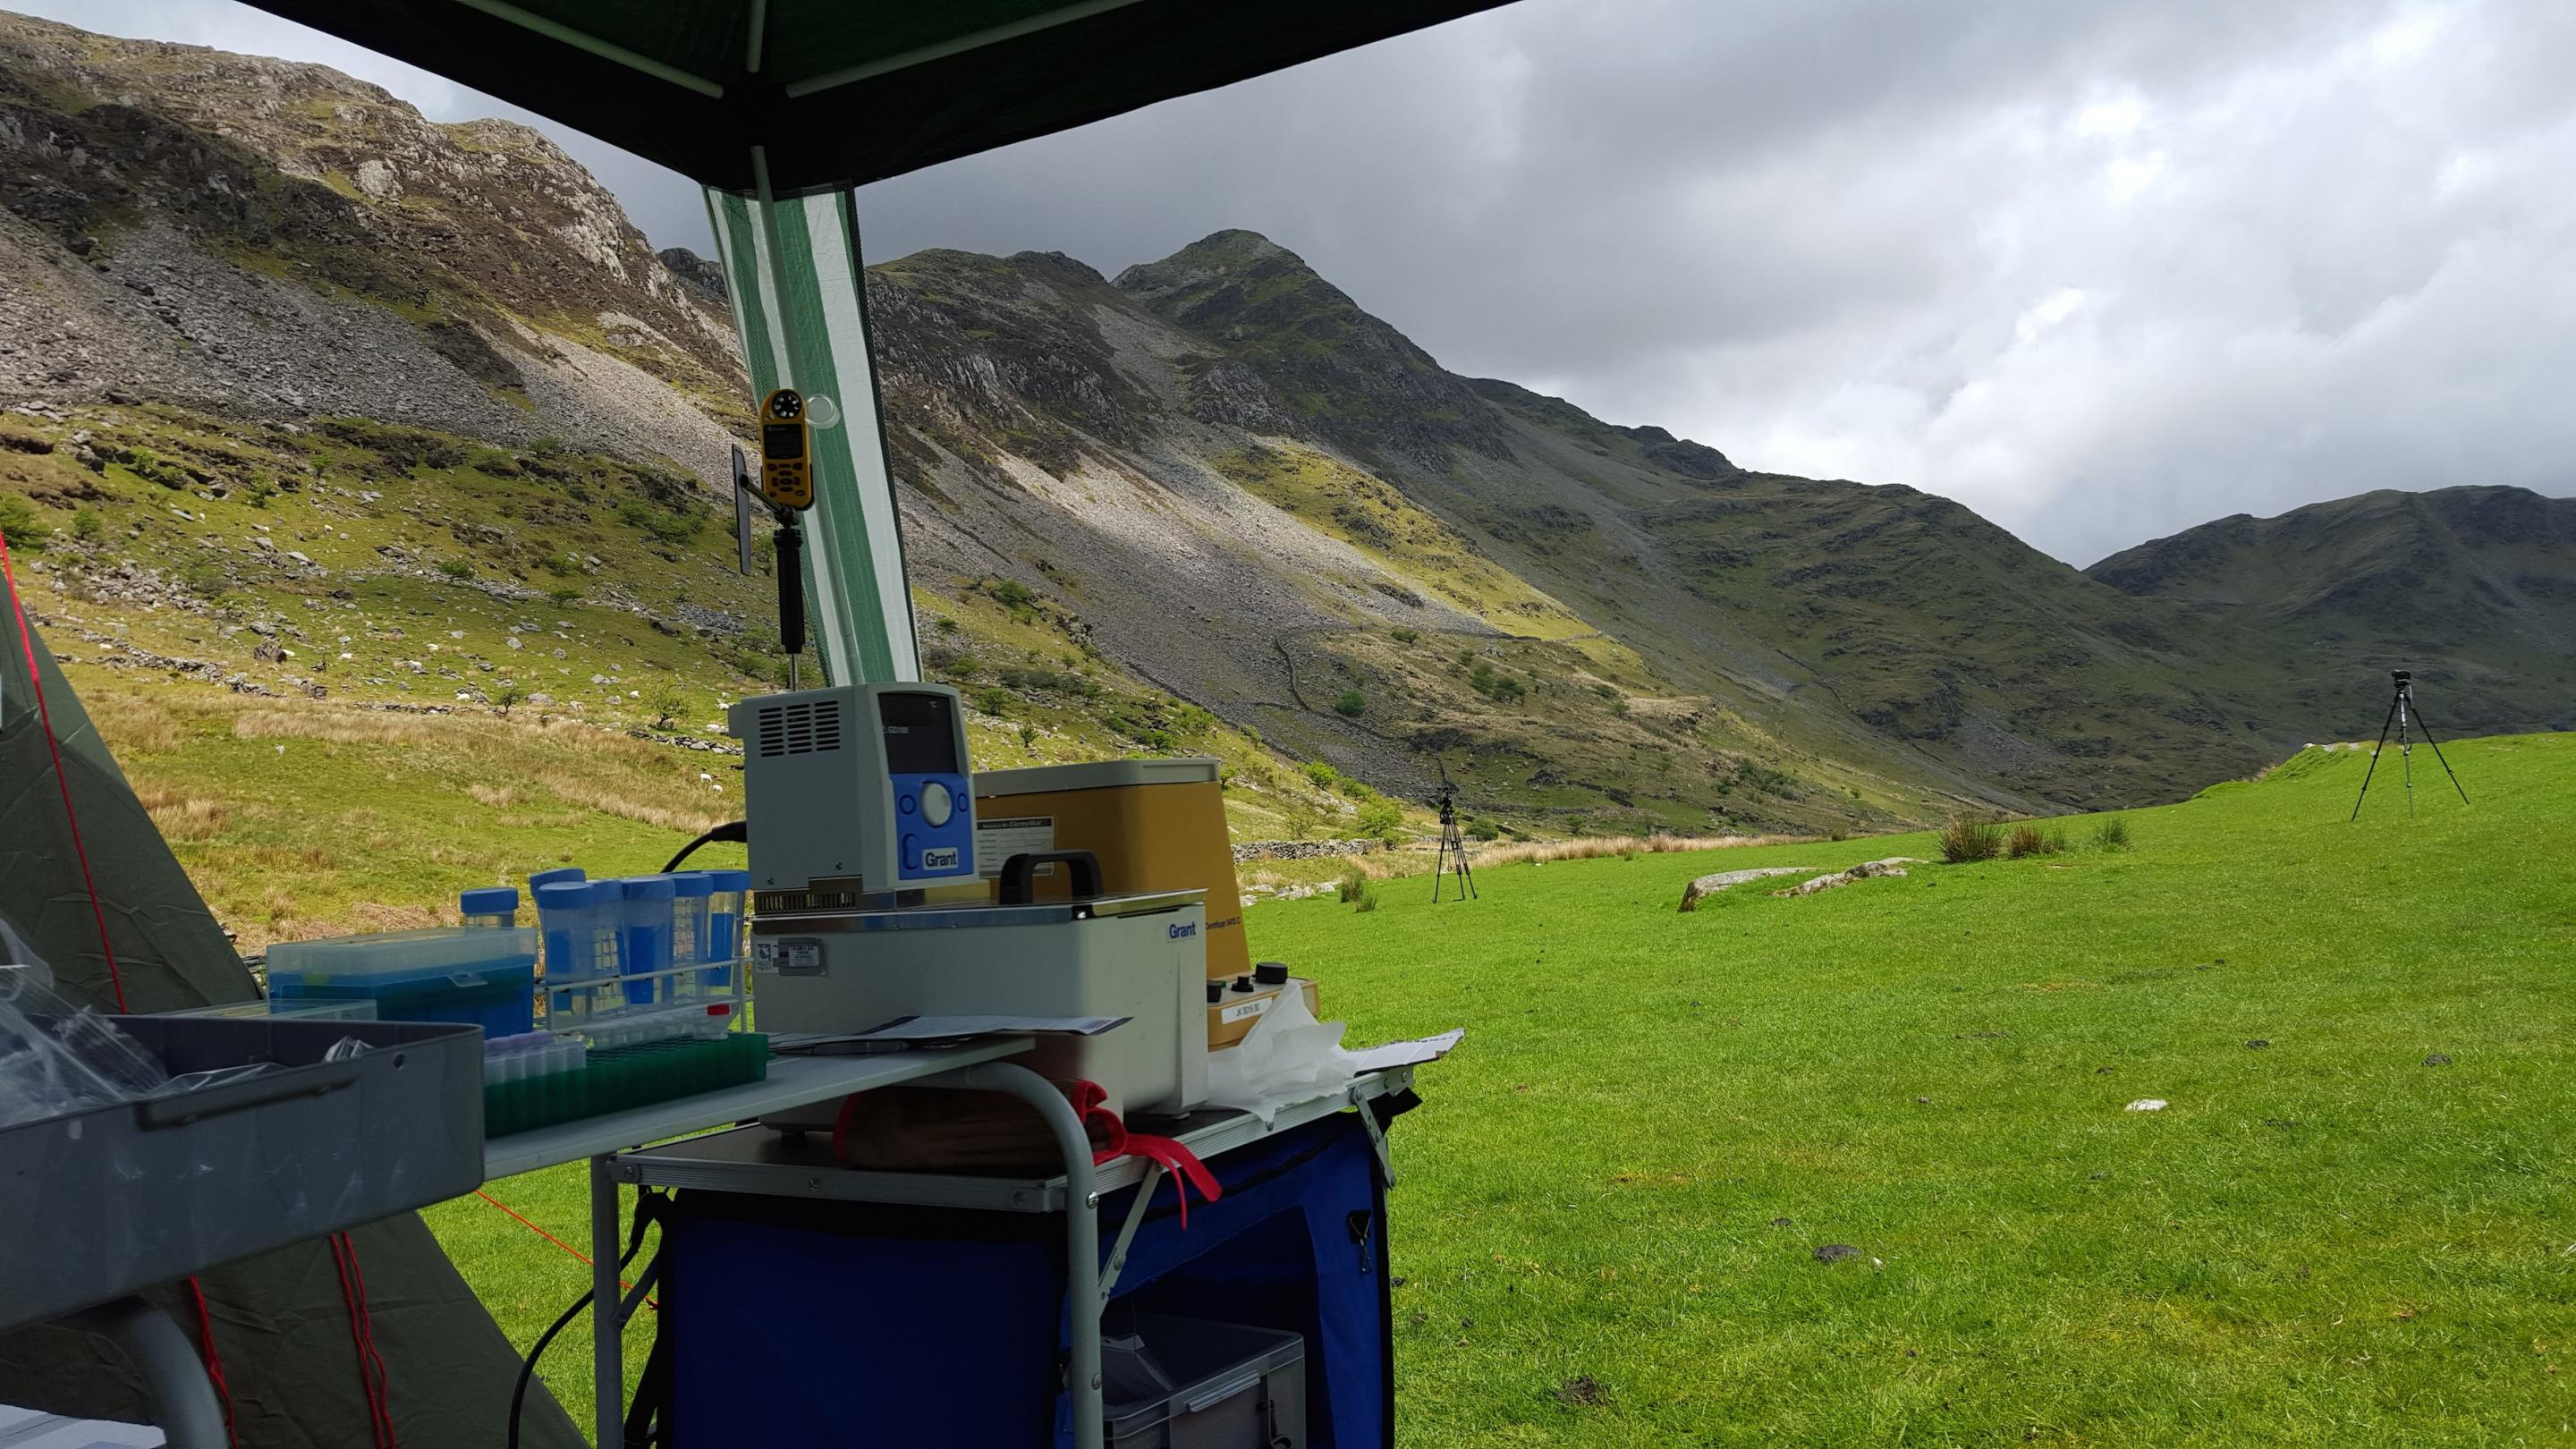 Plant identification in Snowdonia National Park